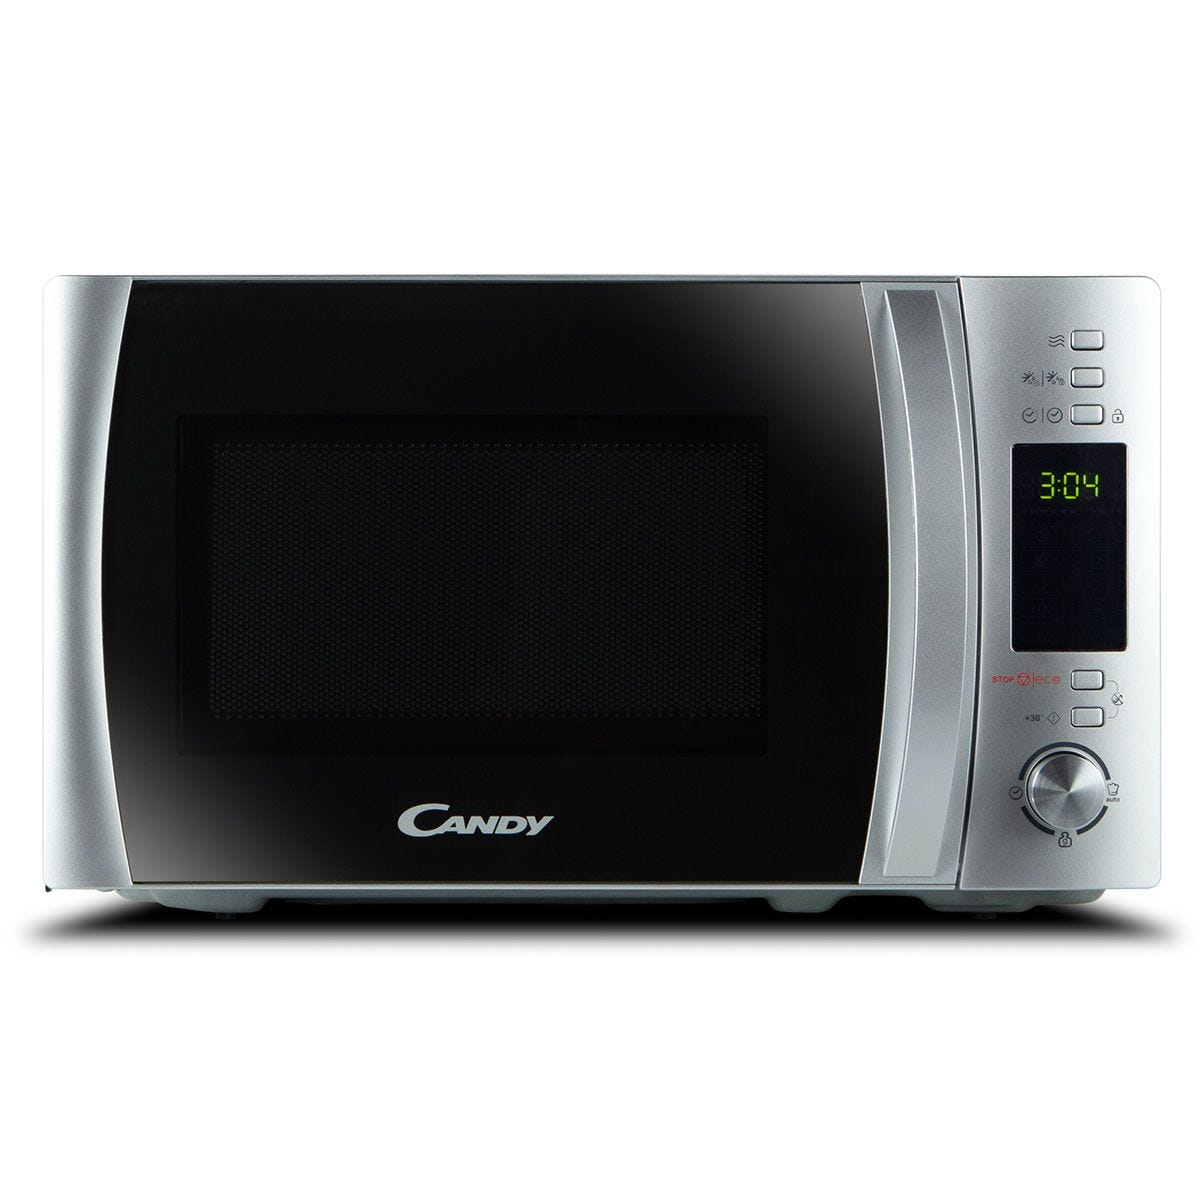 Candy CBWM30DS 900W Freestanding Digital 30L Microwave – Silver with Mirror Door